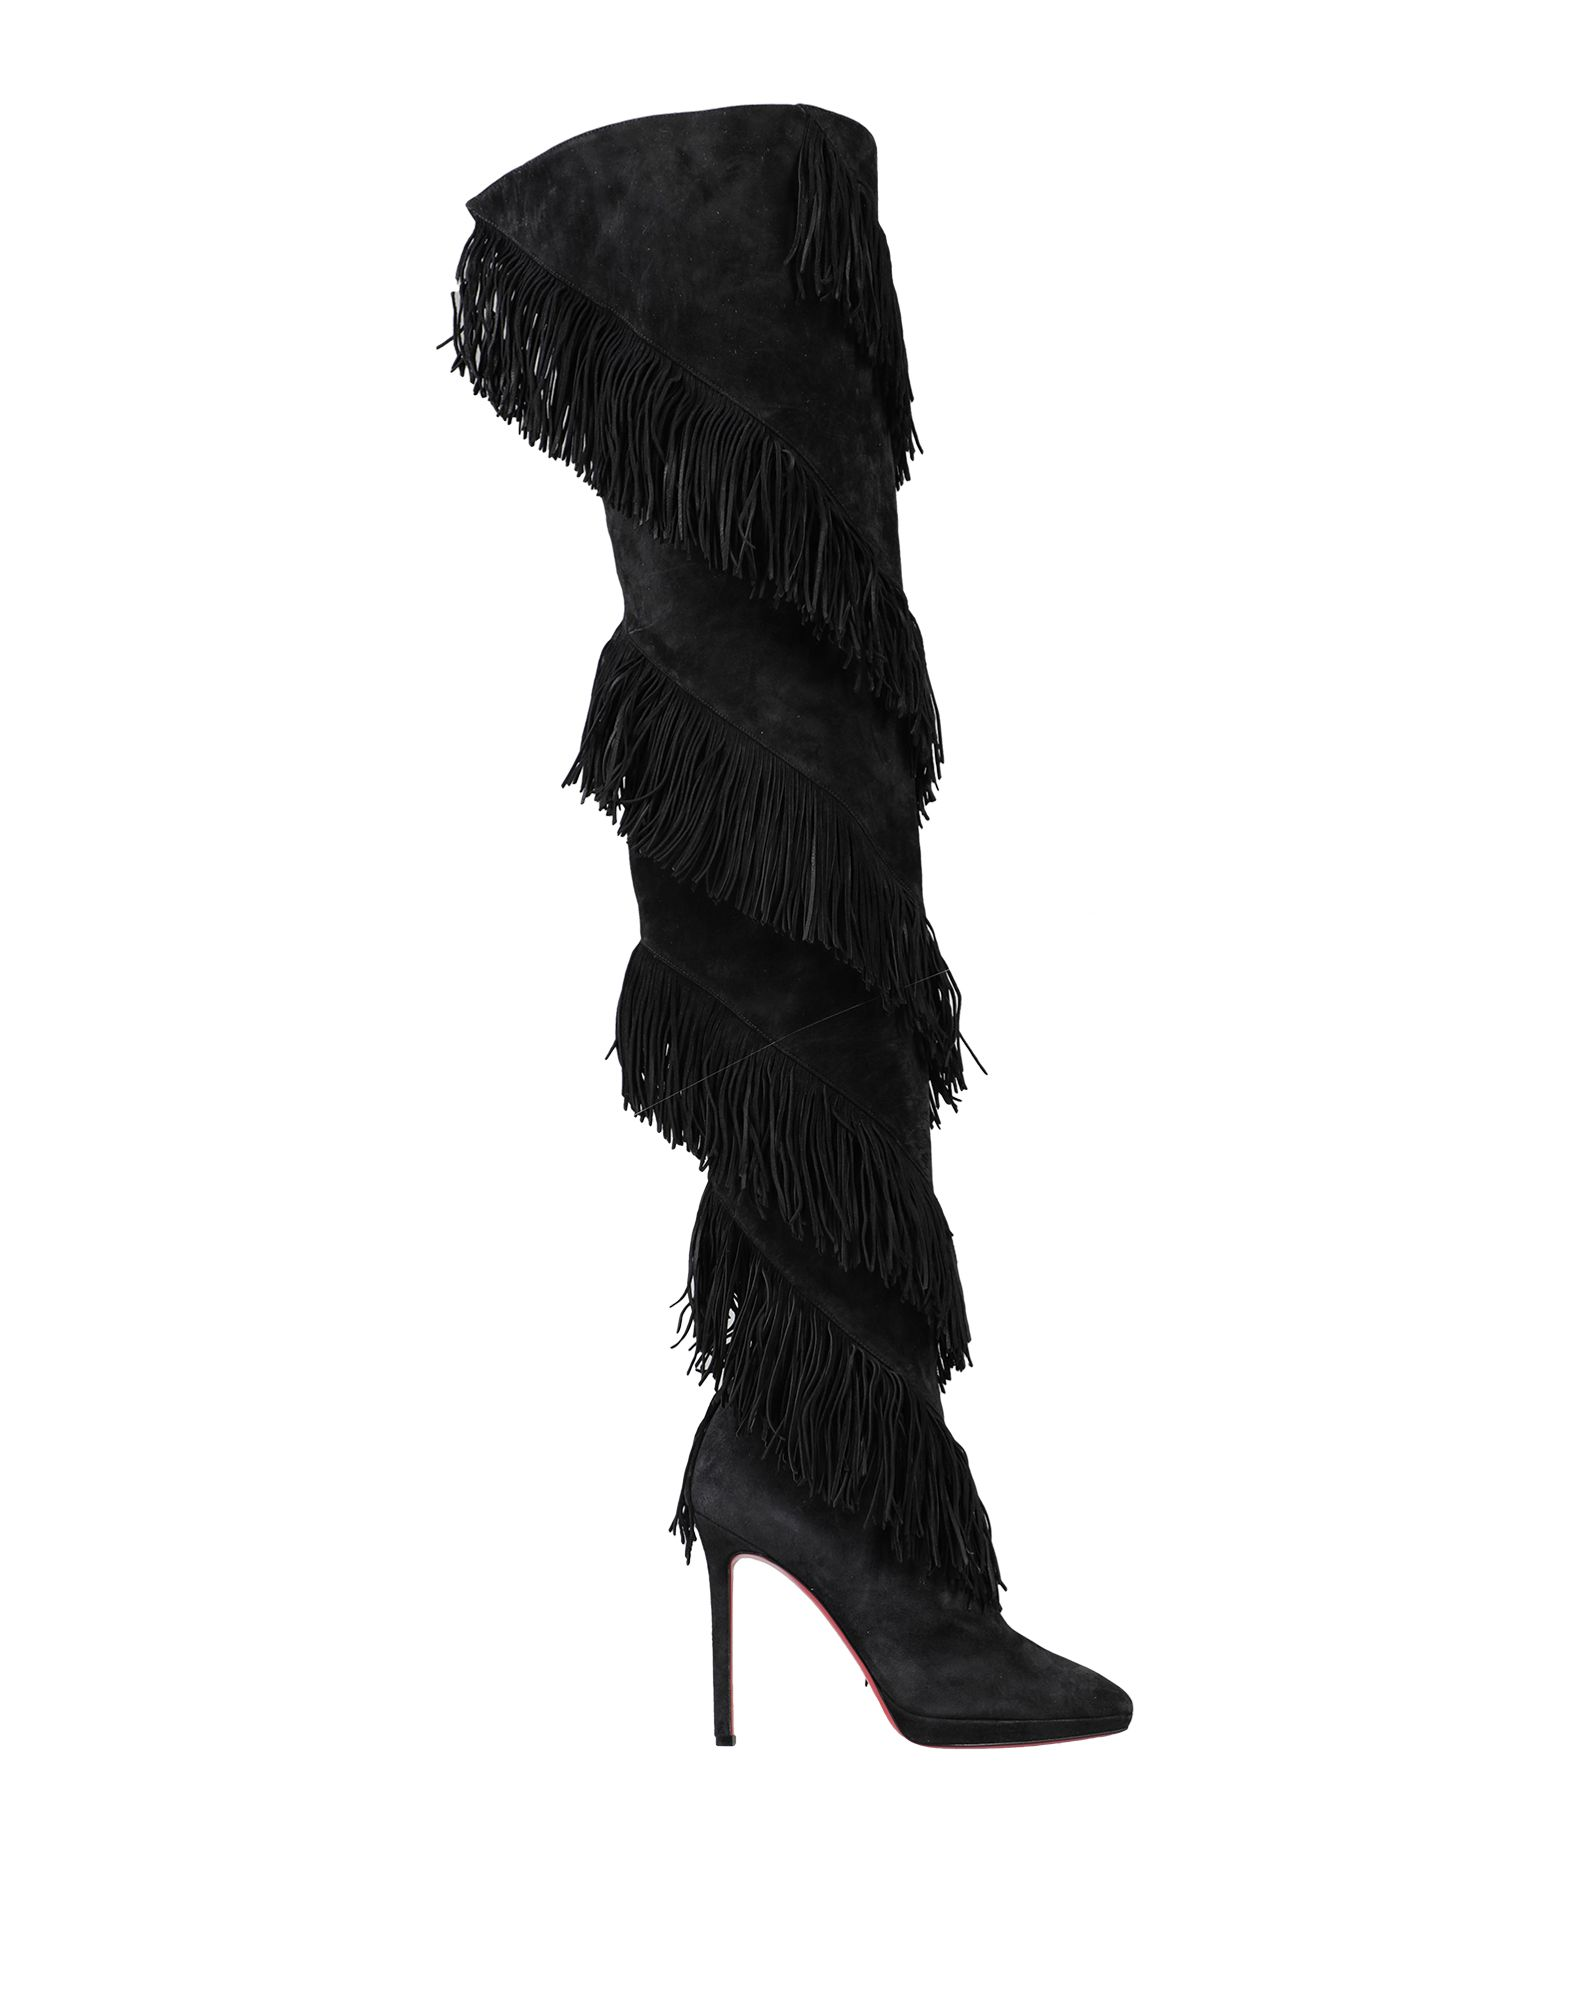 CHRISTIAN LOUBOUTIN Boots. leather, suede effect, fringed, solid color, zipper closure, narrow toeline, stiletto heel, covered heel, leather lining, leather sole, contains non-textile parts of animal origin, small sized. Soft Leather